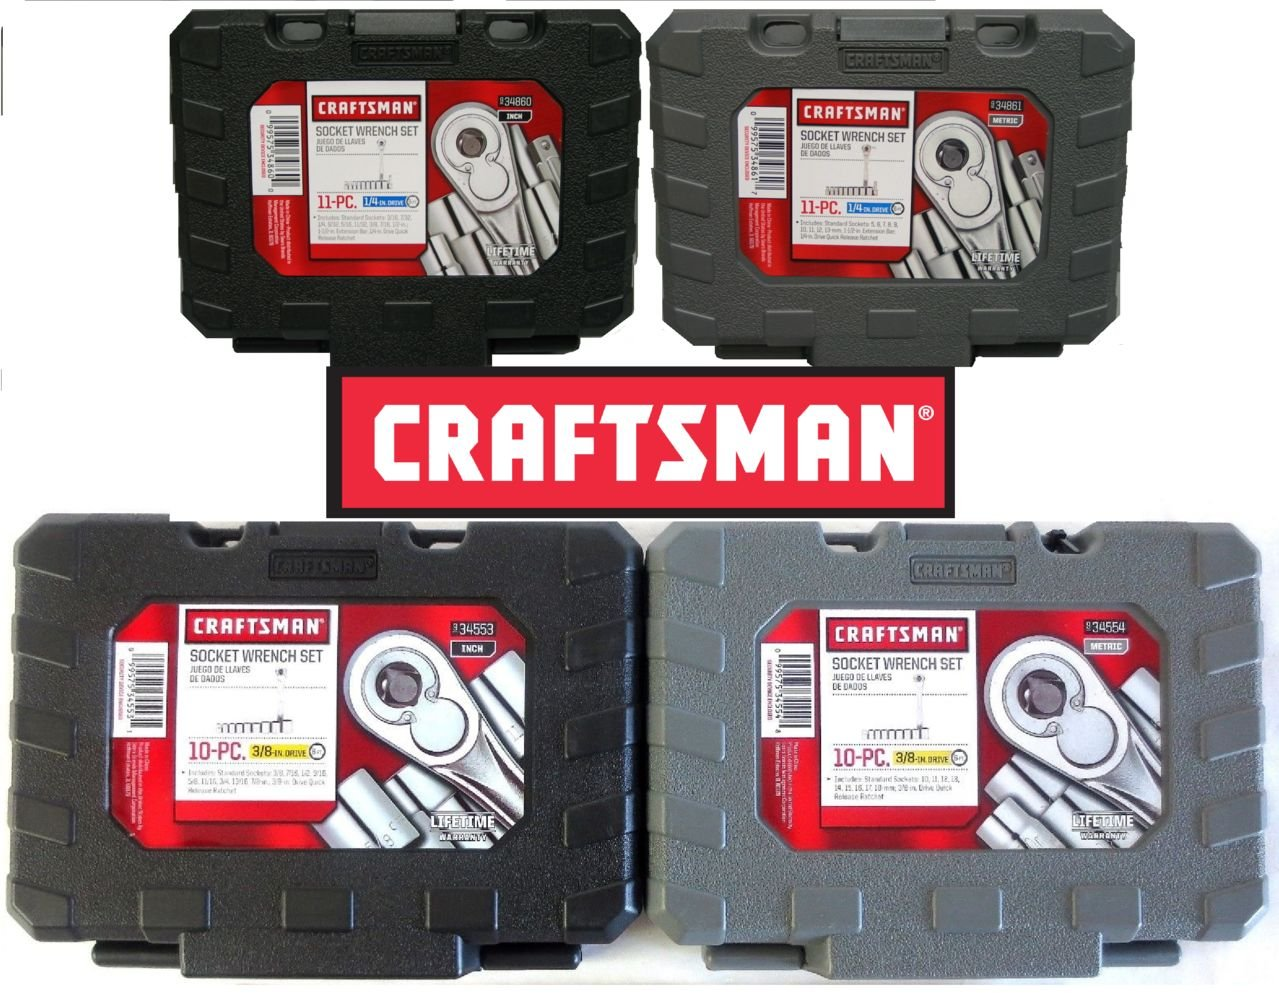 Craftsman 42 PC 1/4 & 3/8 Drive Ratchet Socket Set Standard and Metric 9-34860 9-34861 9-34554 9-34553 by Craftsman  B01F48E2S8